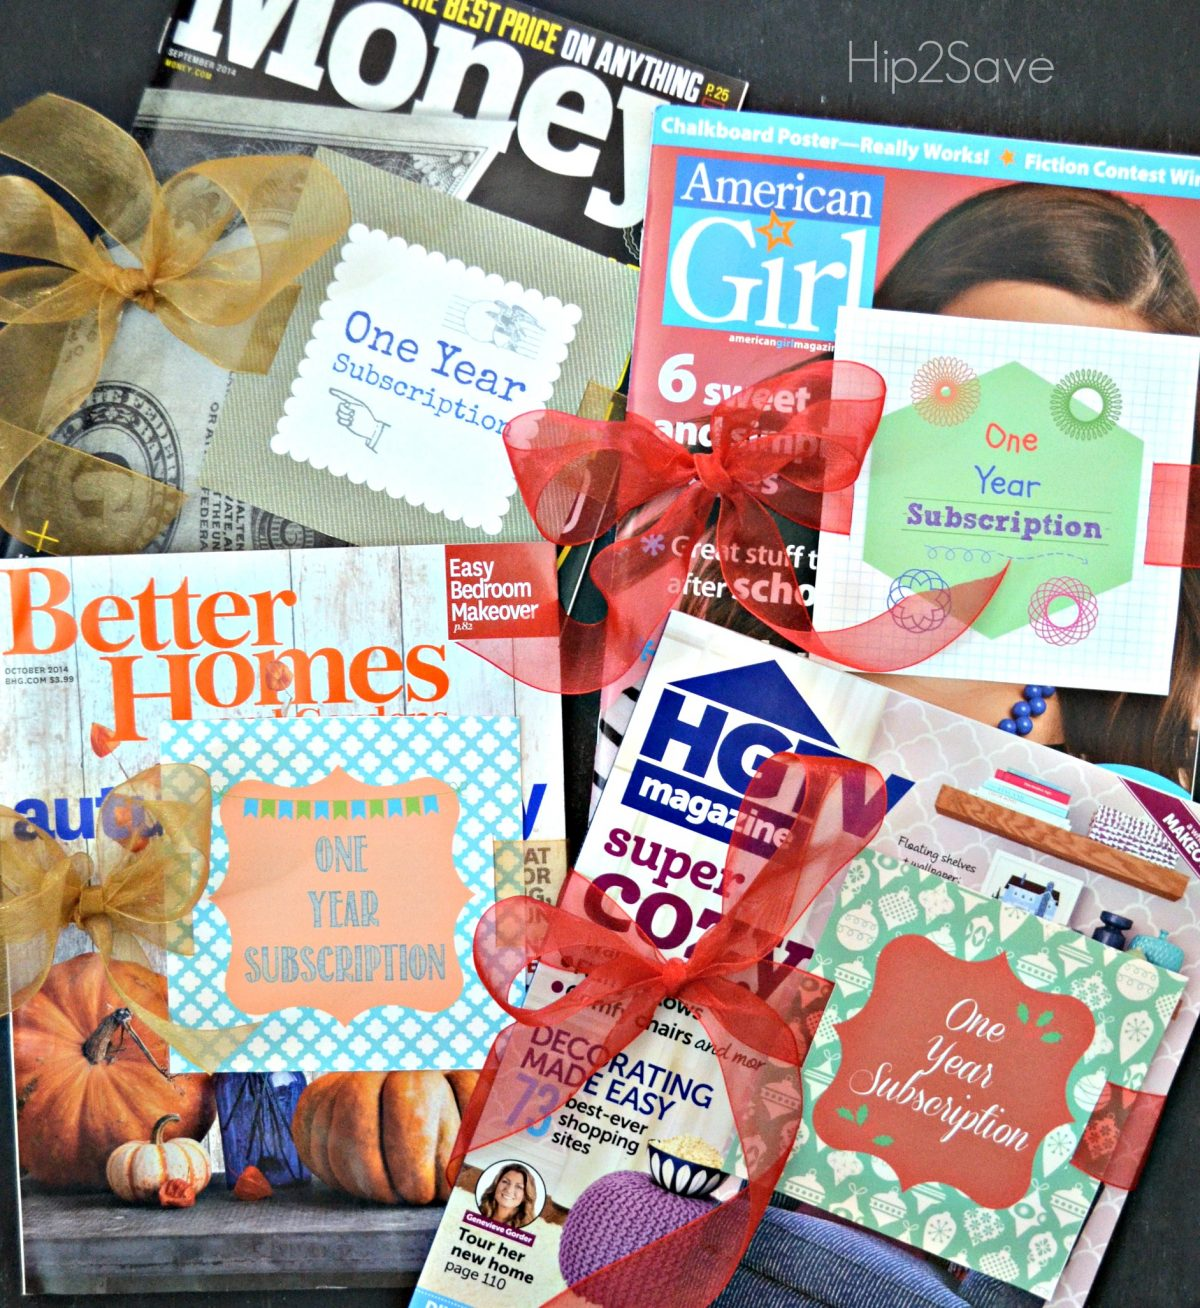 One Year Subscription Cards Hip2Save